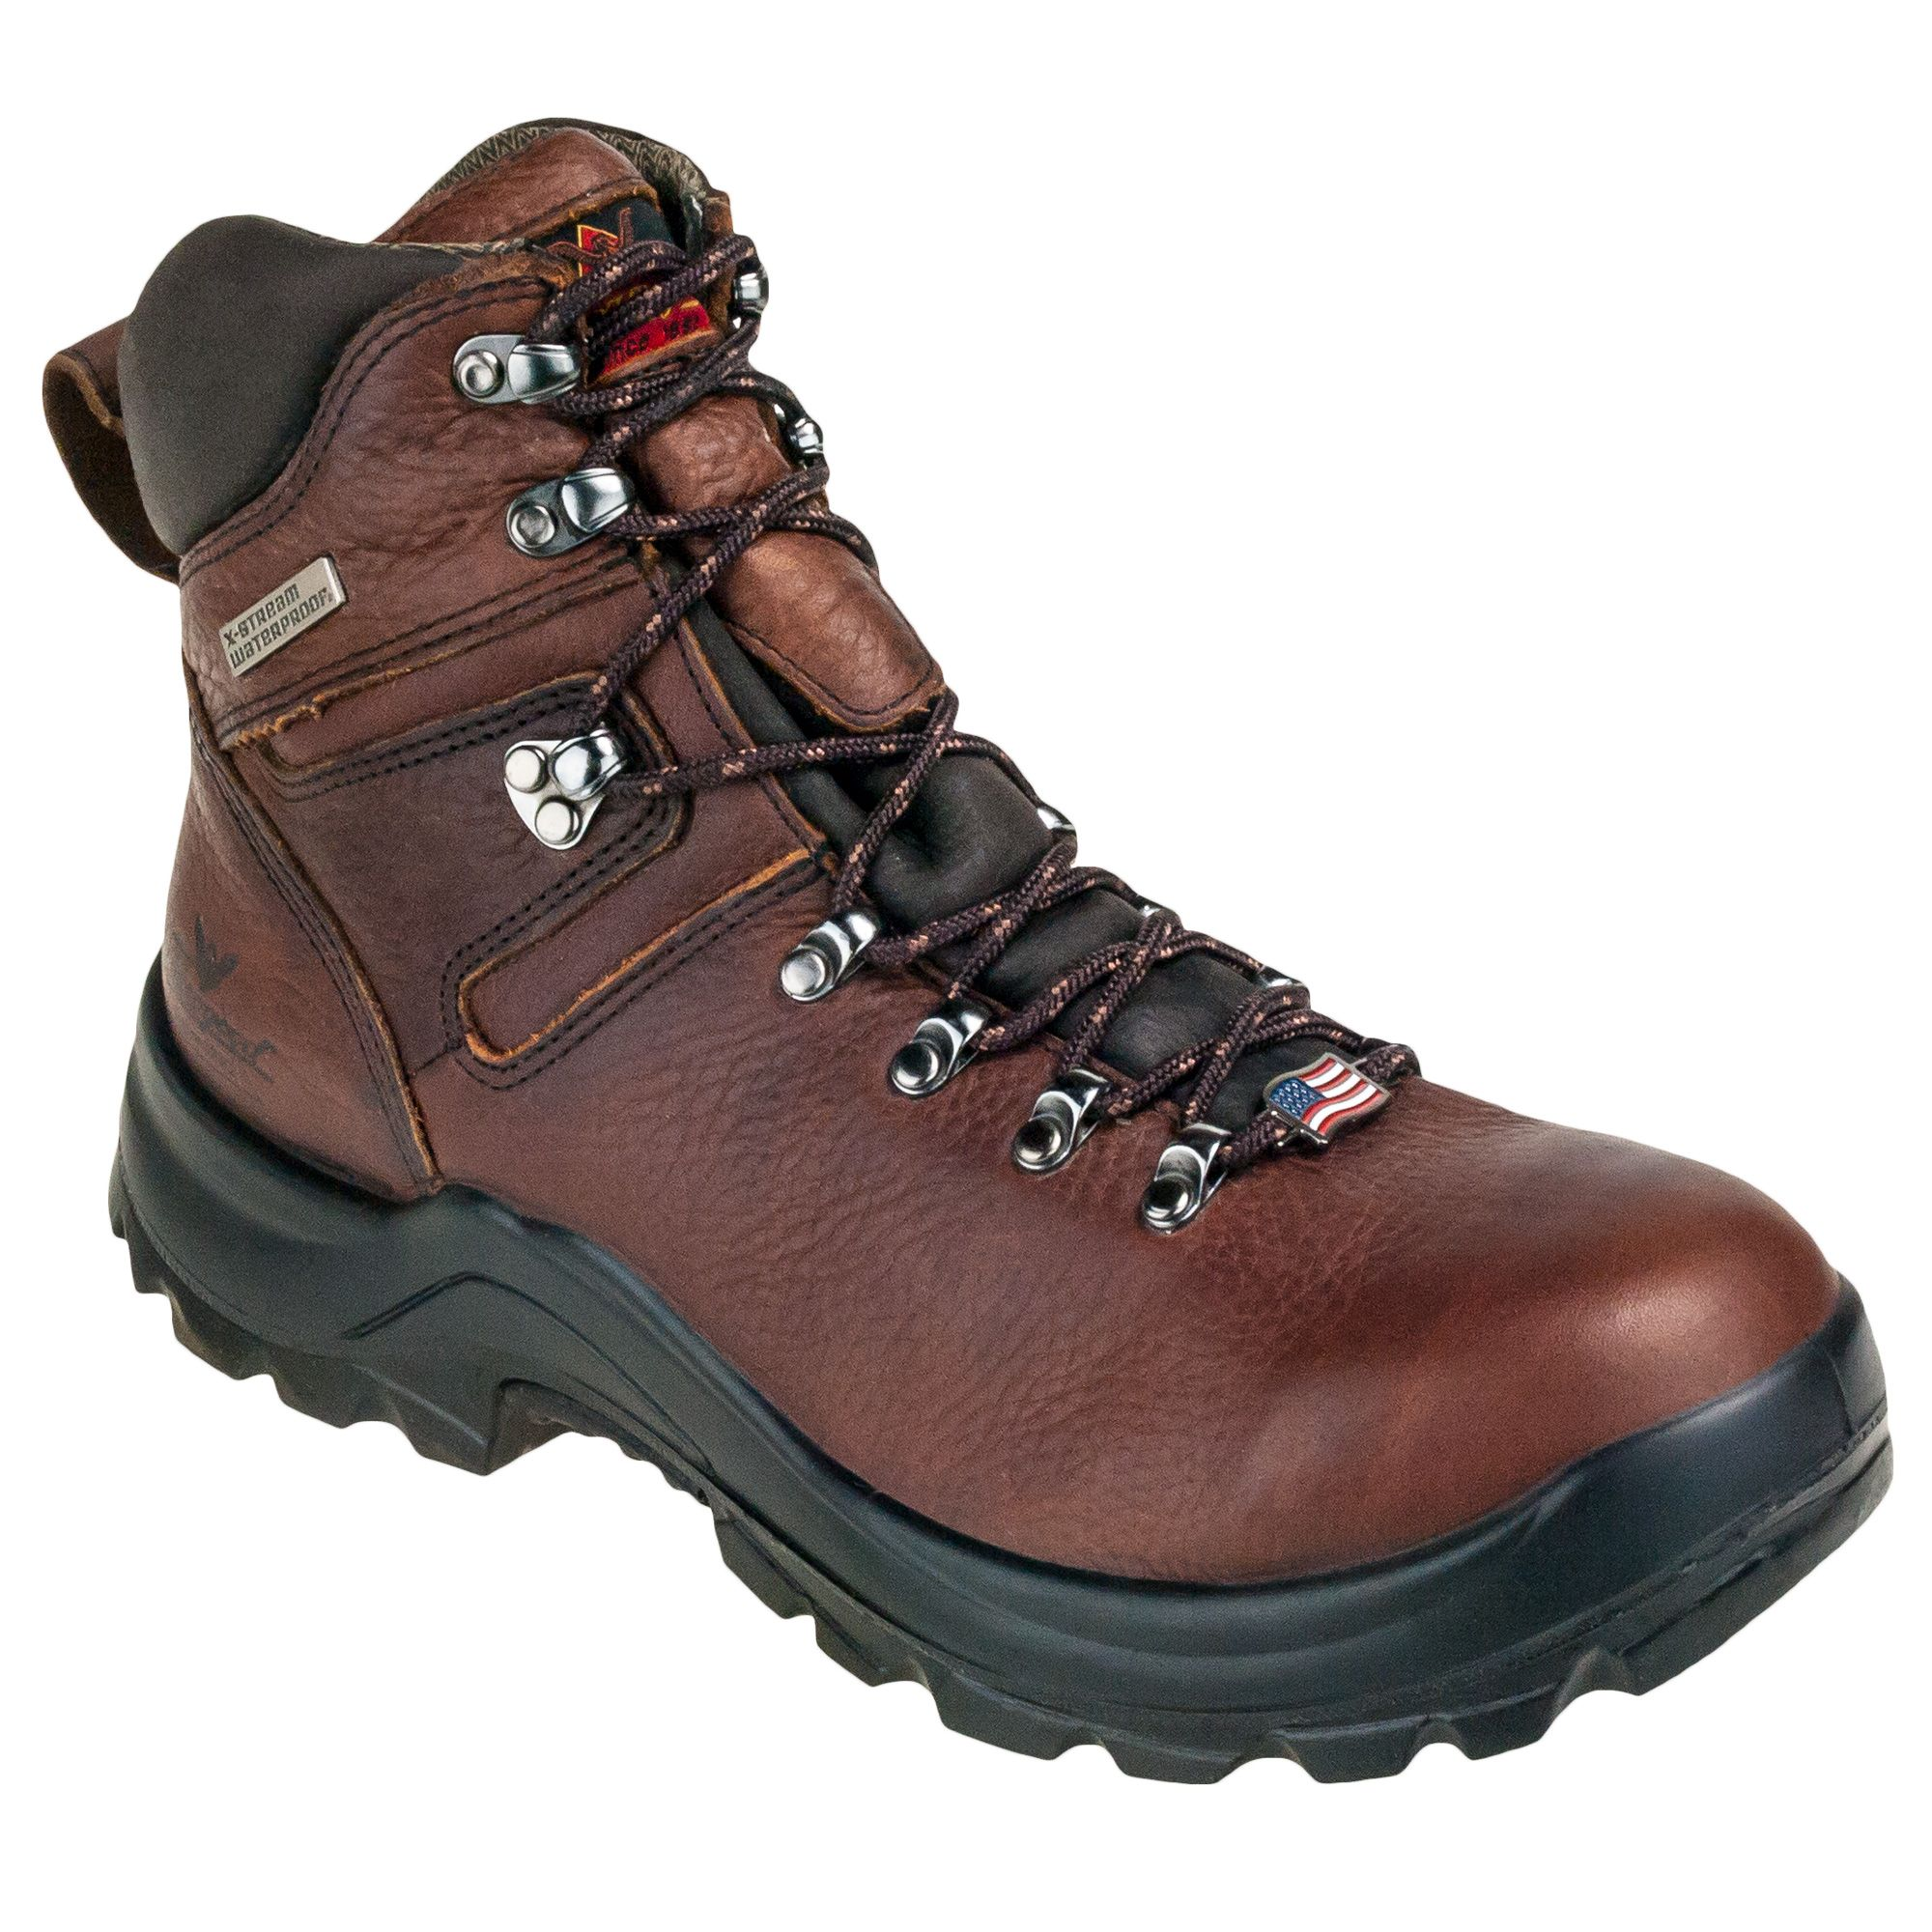 118e72901a7 Thorogood Boots USA-Made 814-3266 Men's Waterproof EH Brown Omni 6 ...